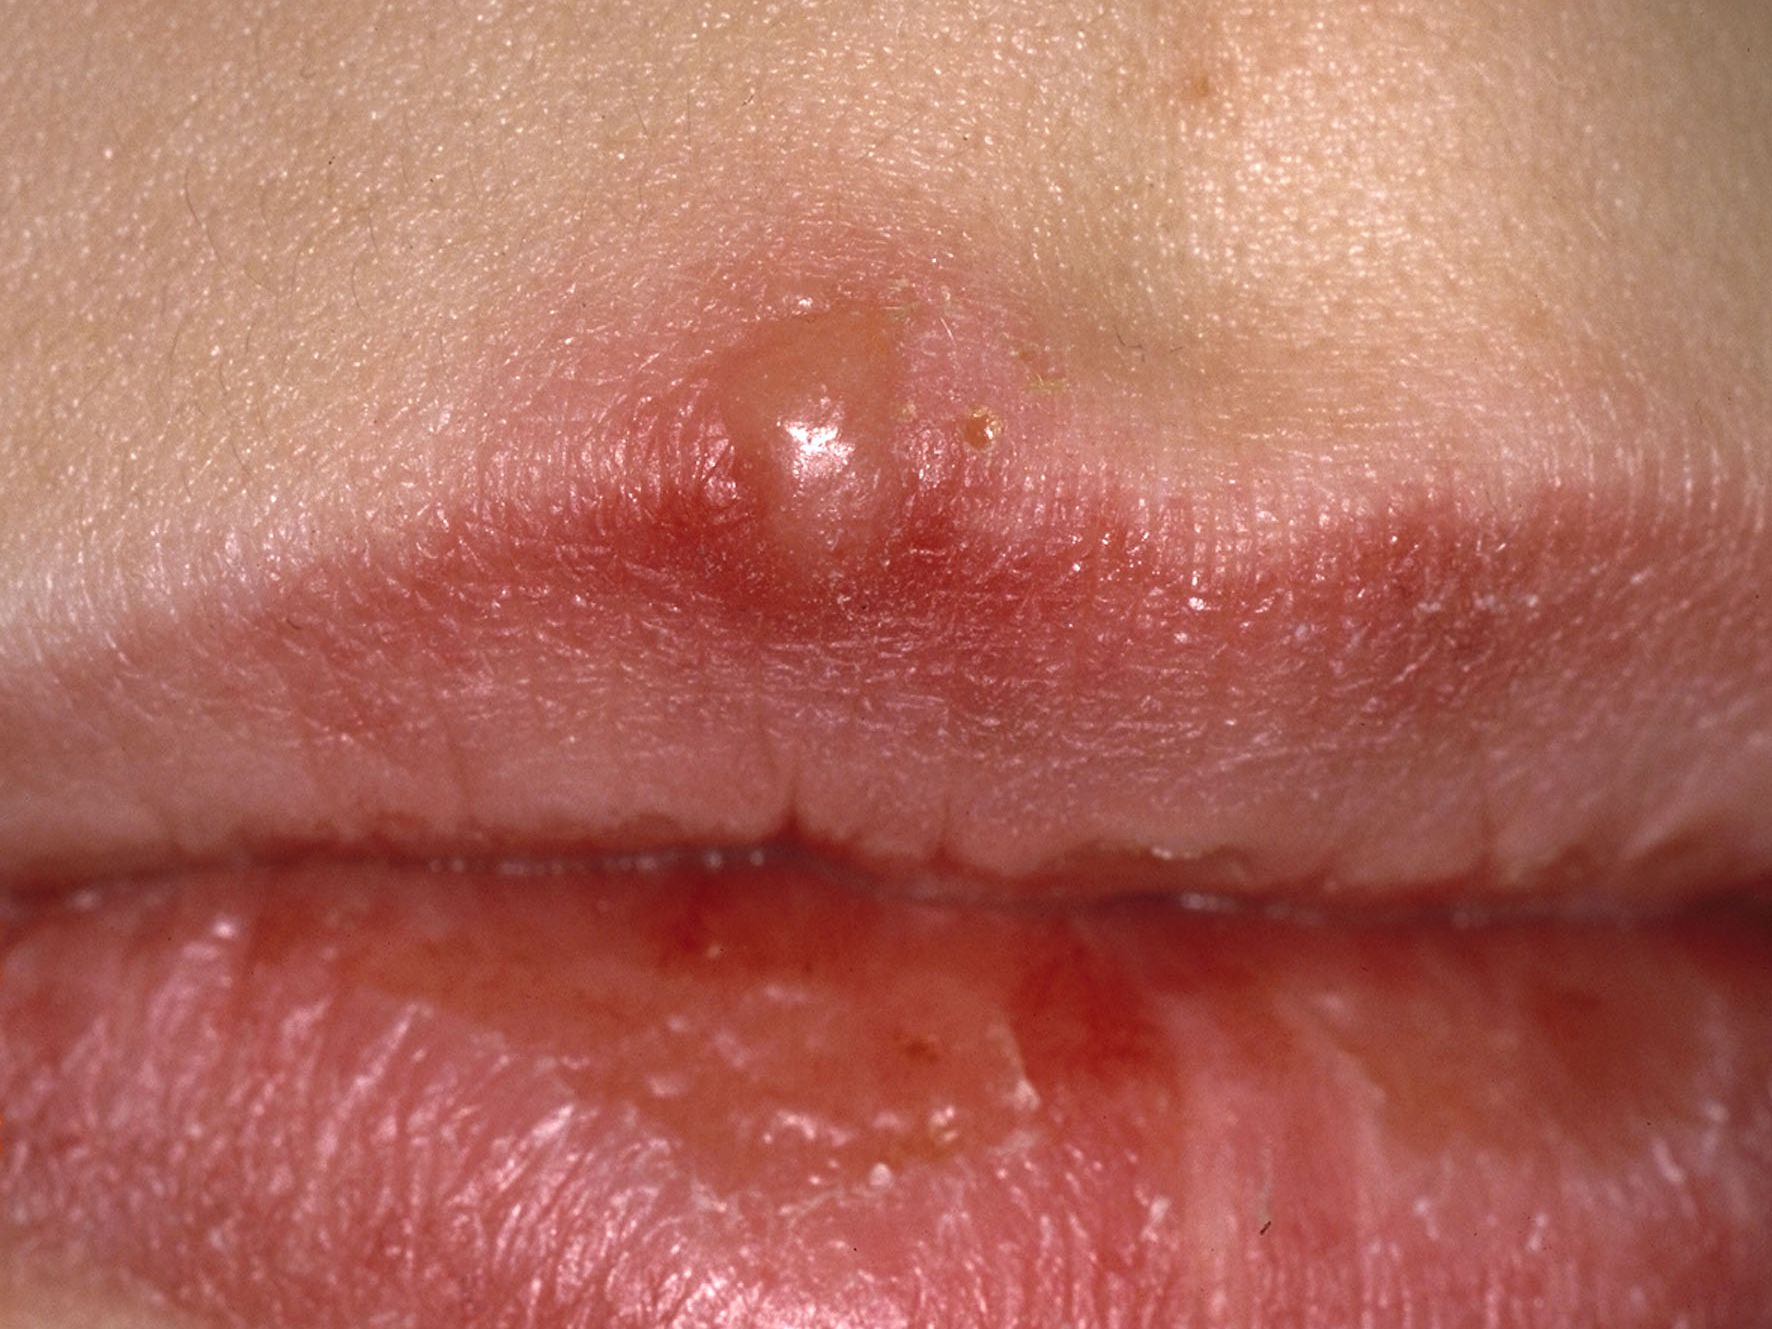 Hpv and canker sores, Hepatocellular cancer meaning